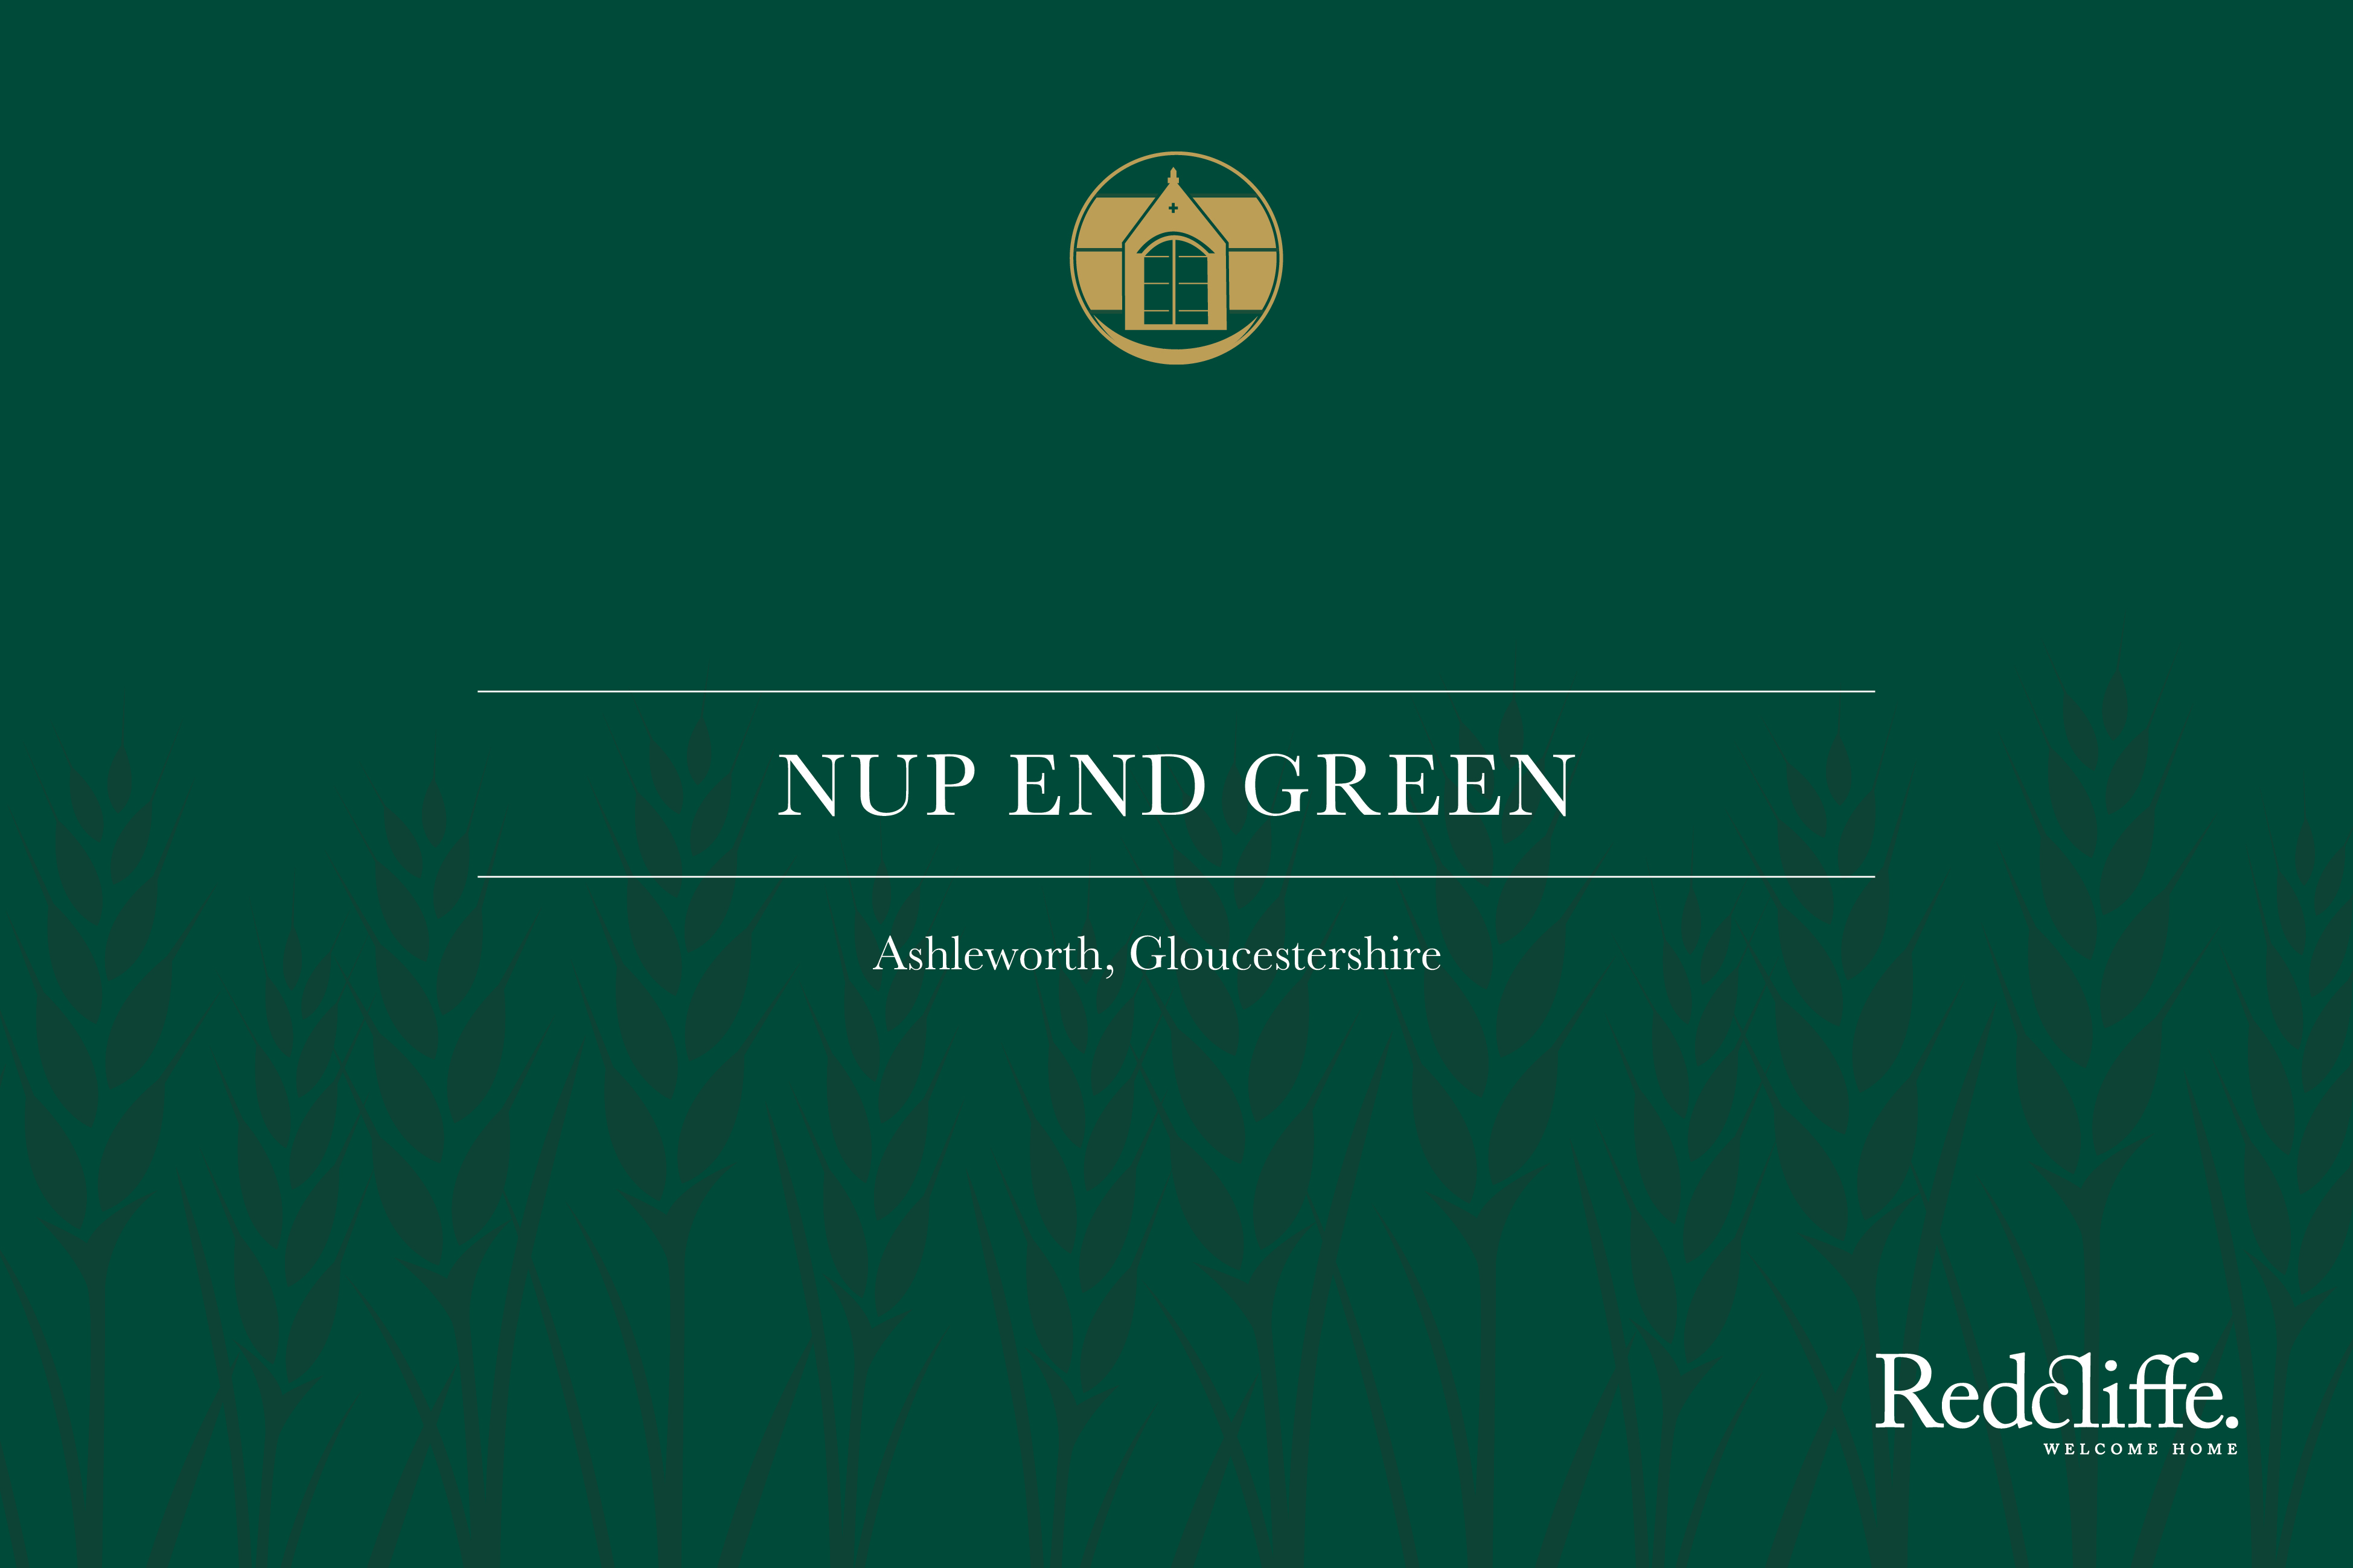 VIP Launch - Nup End Green, Ashleworth